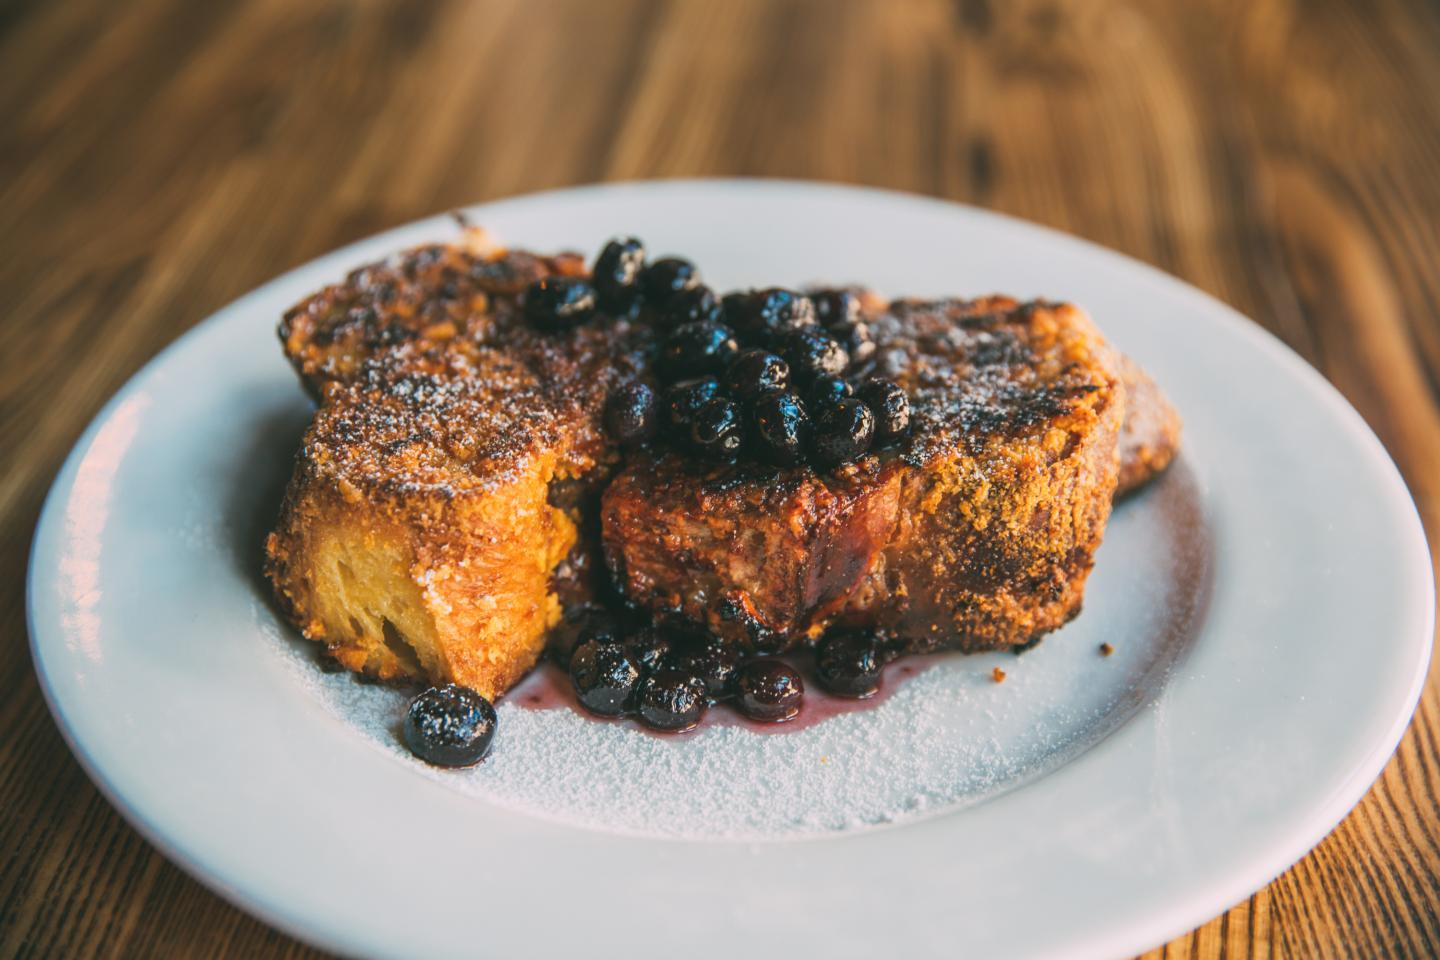 Oyster Bah french toast